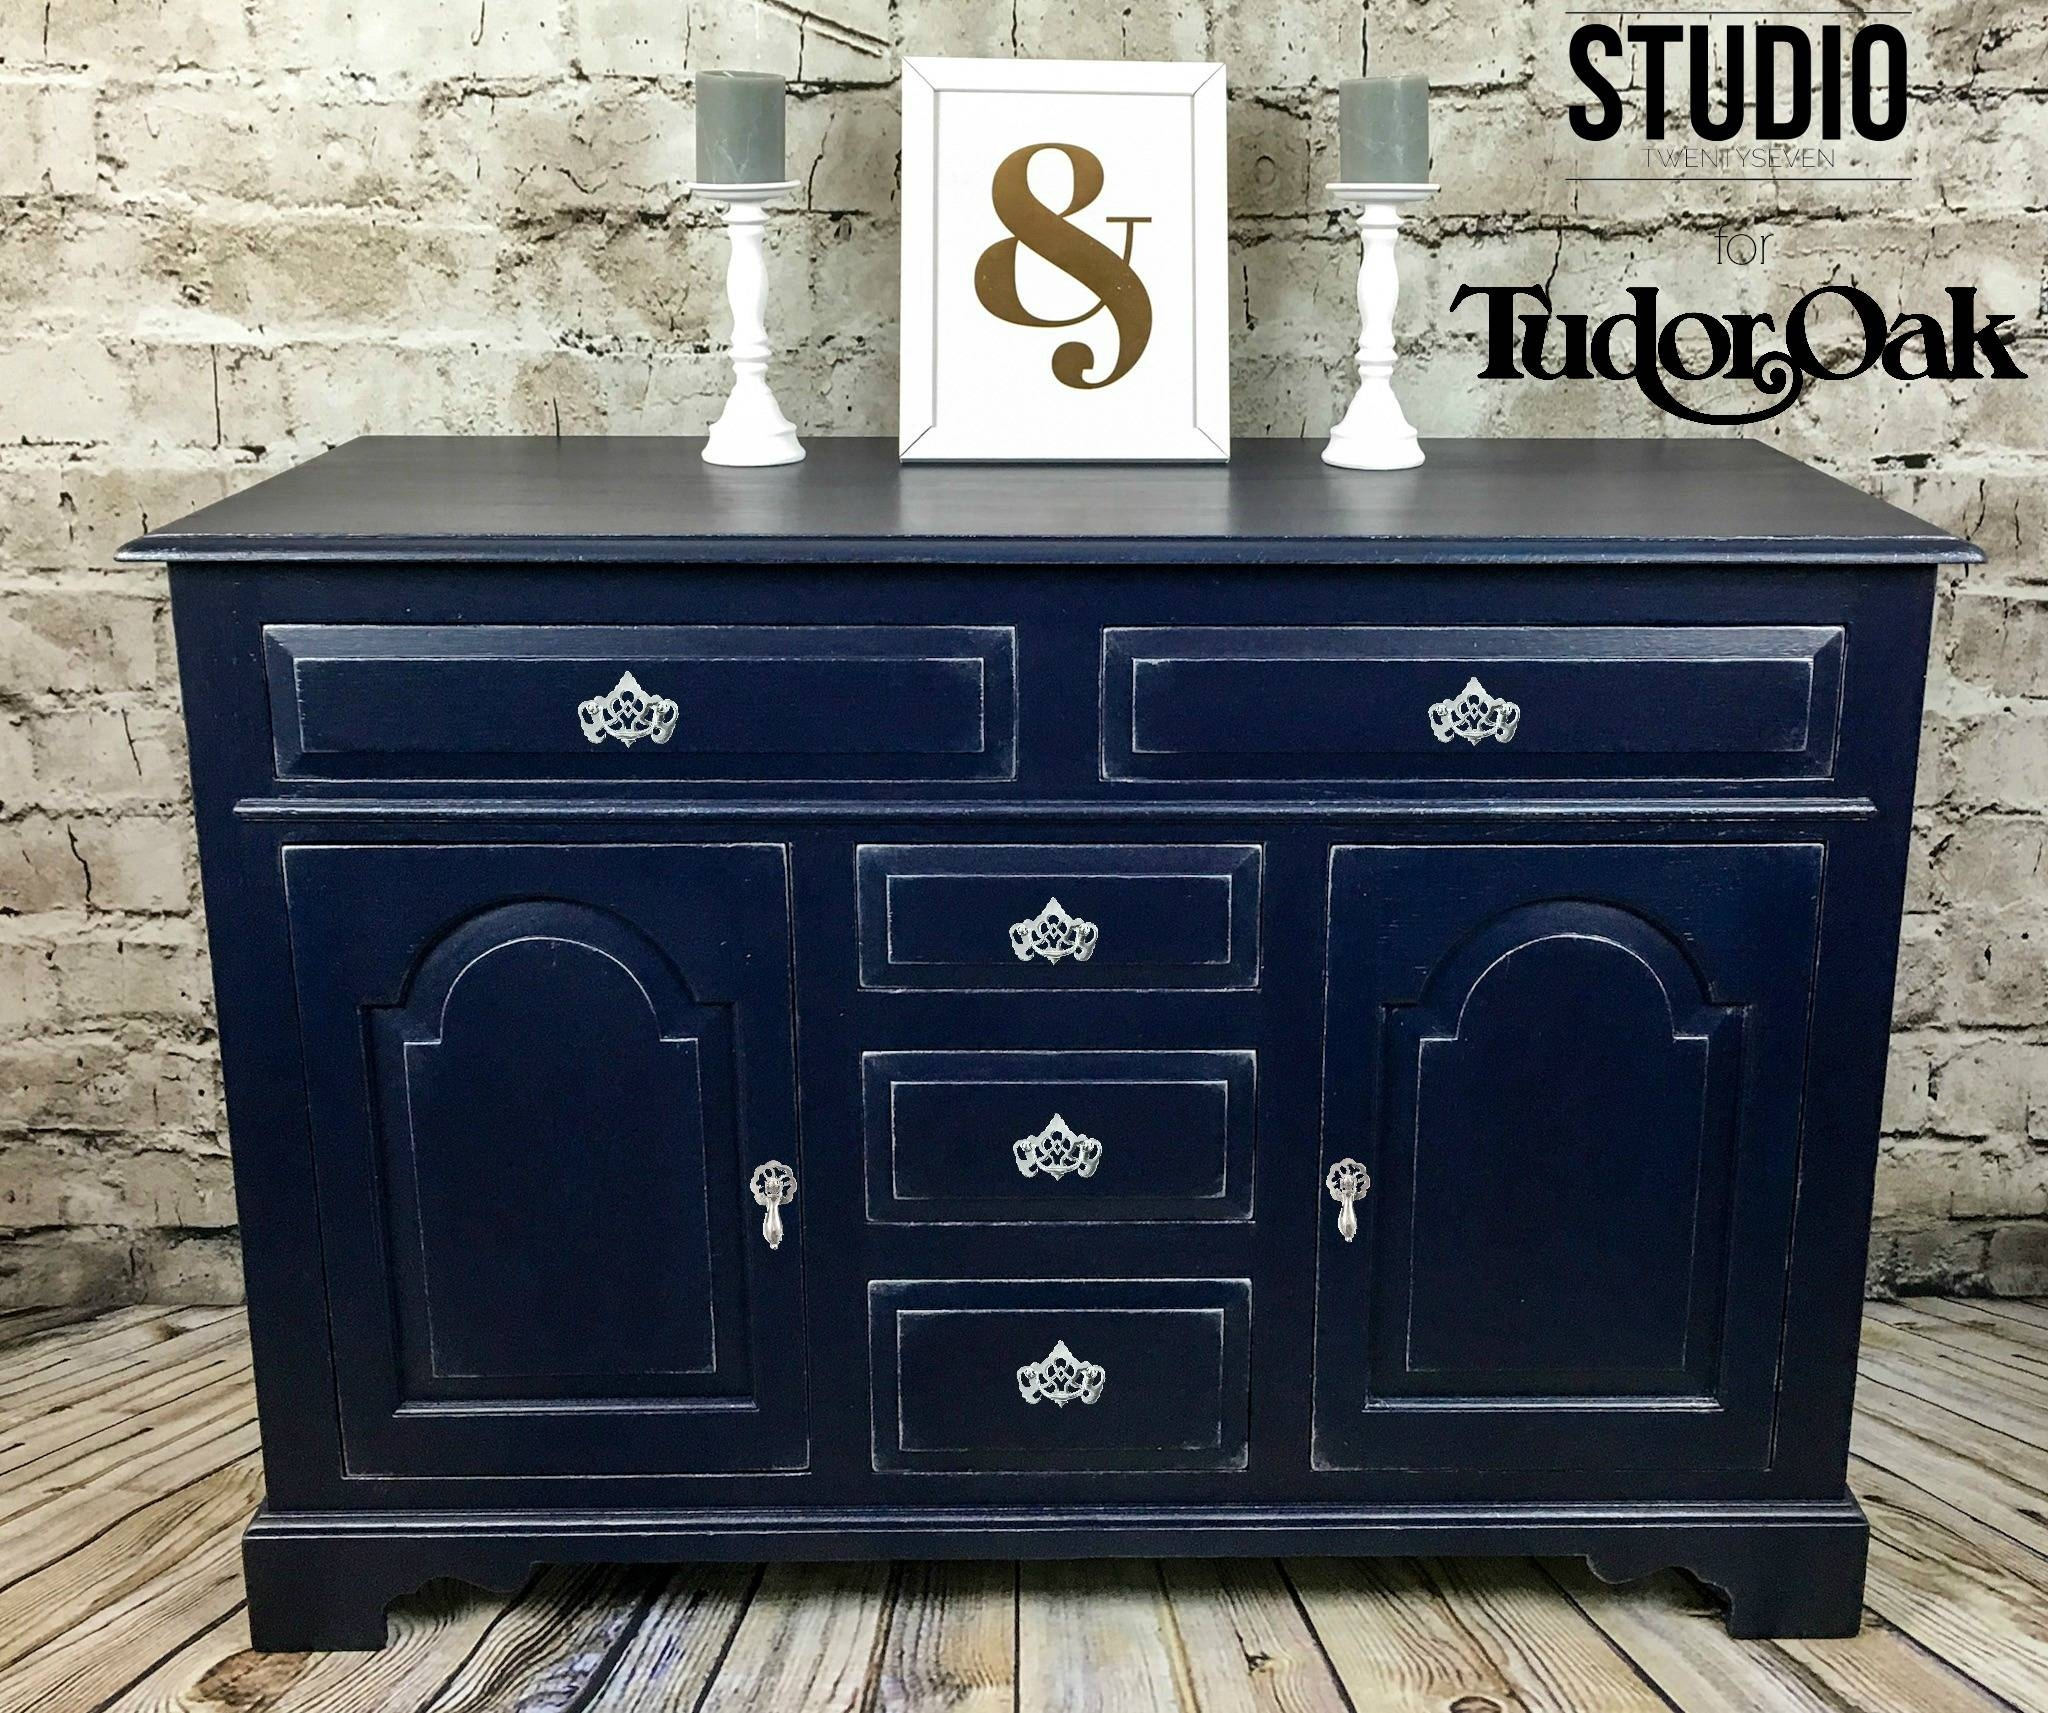 Tudor Oak Navy Purple And Silver Sideboard – Studio27 With Regard To Purple Sideboard (#18 of 20)